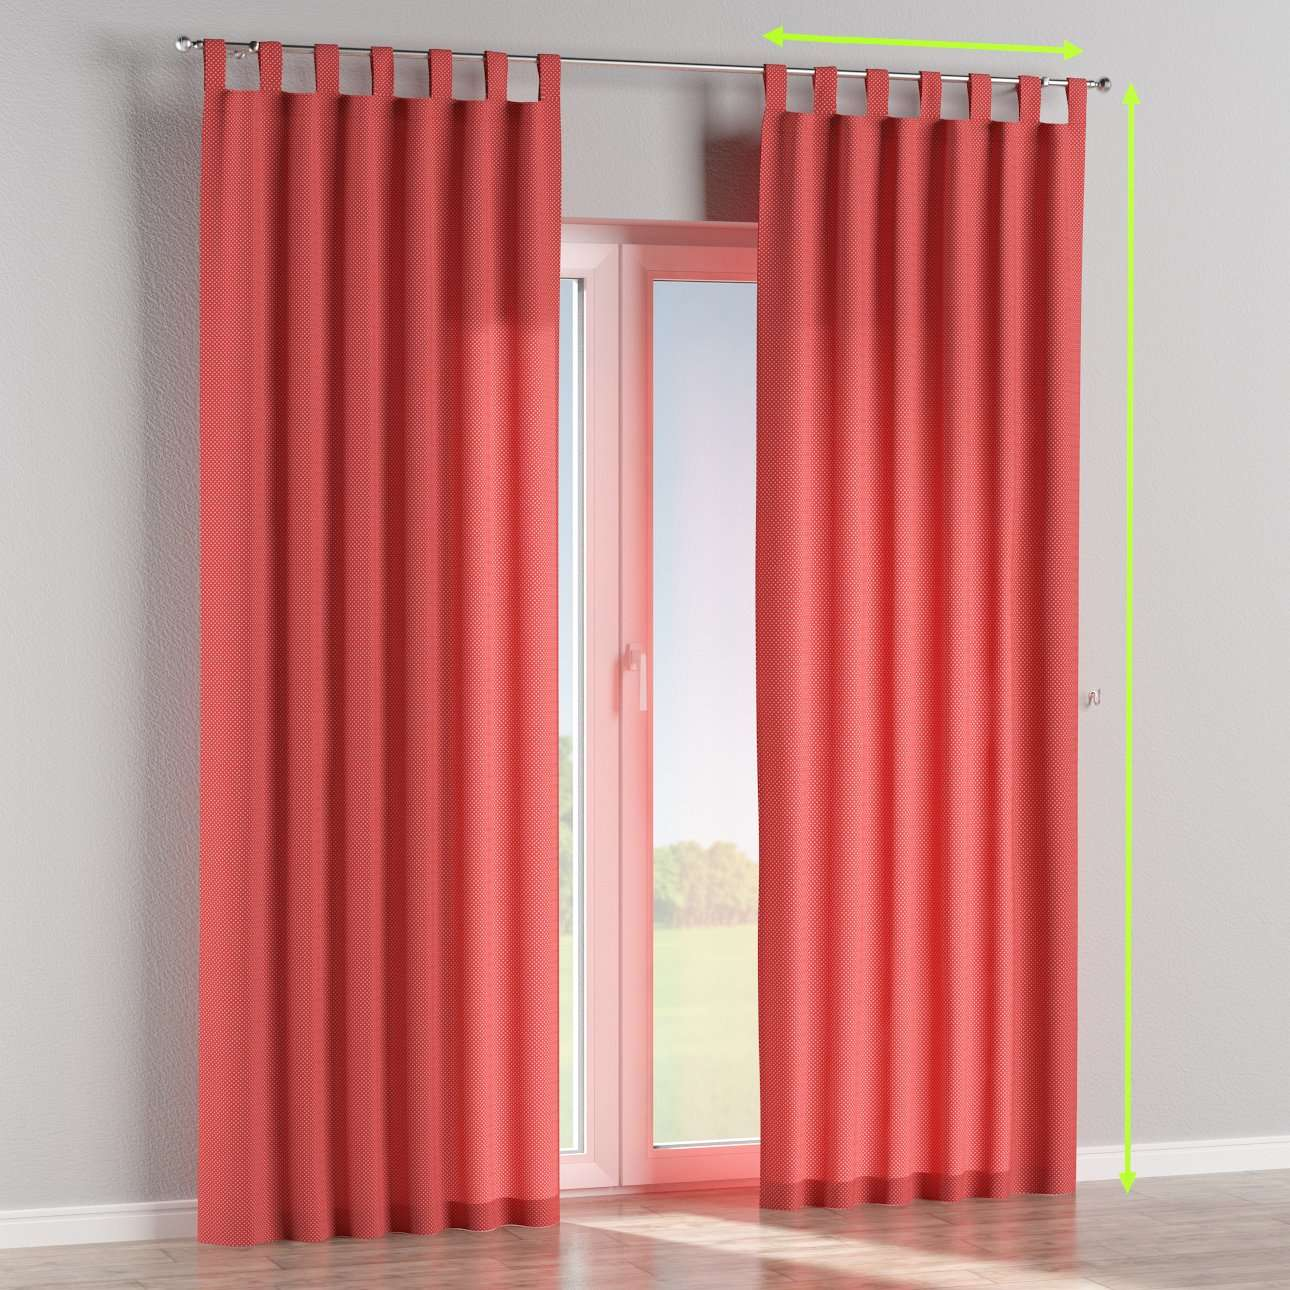 Tab top curtains in collection Ashley, fabric: 137-50